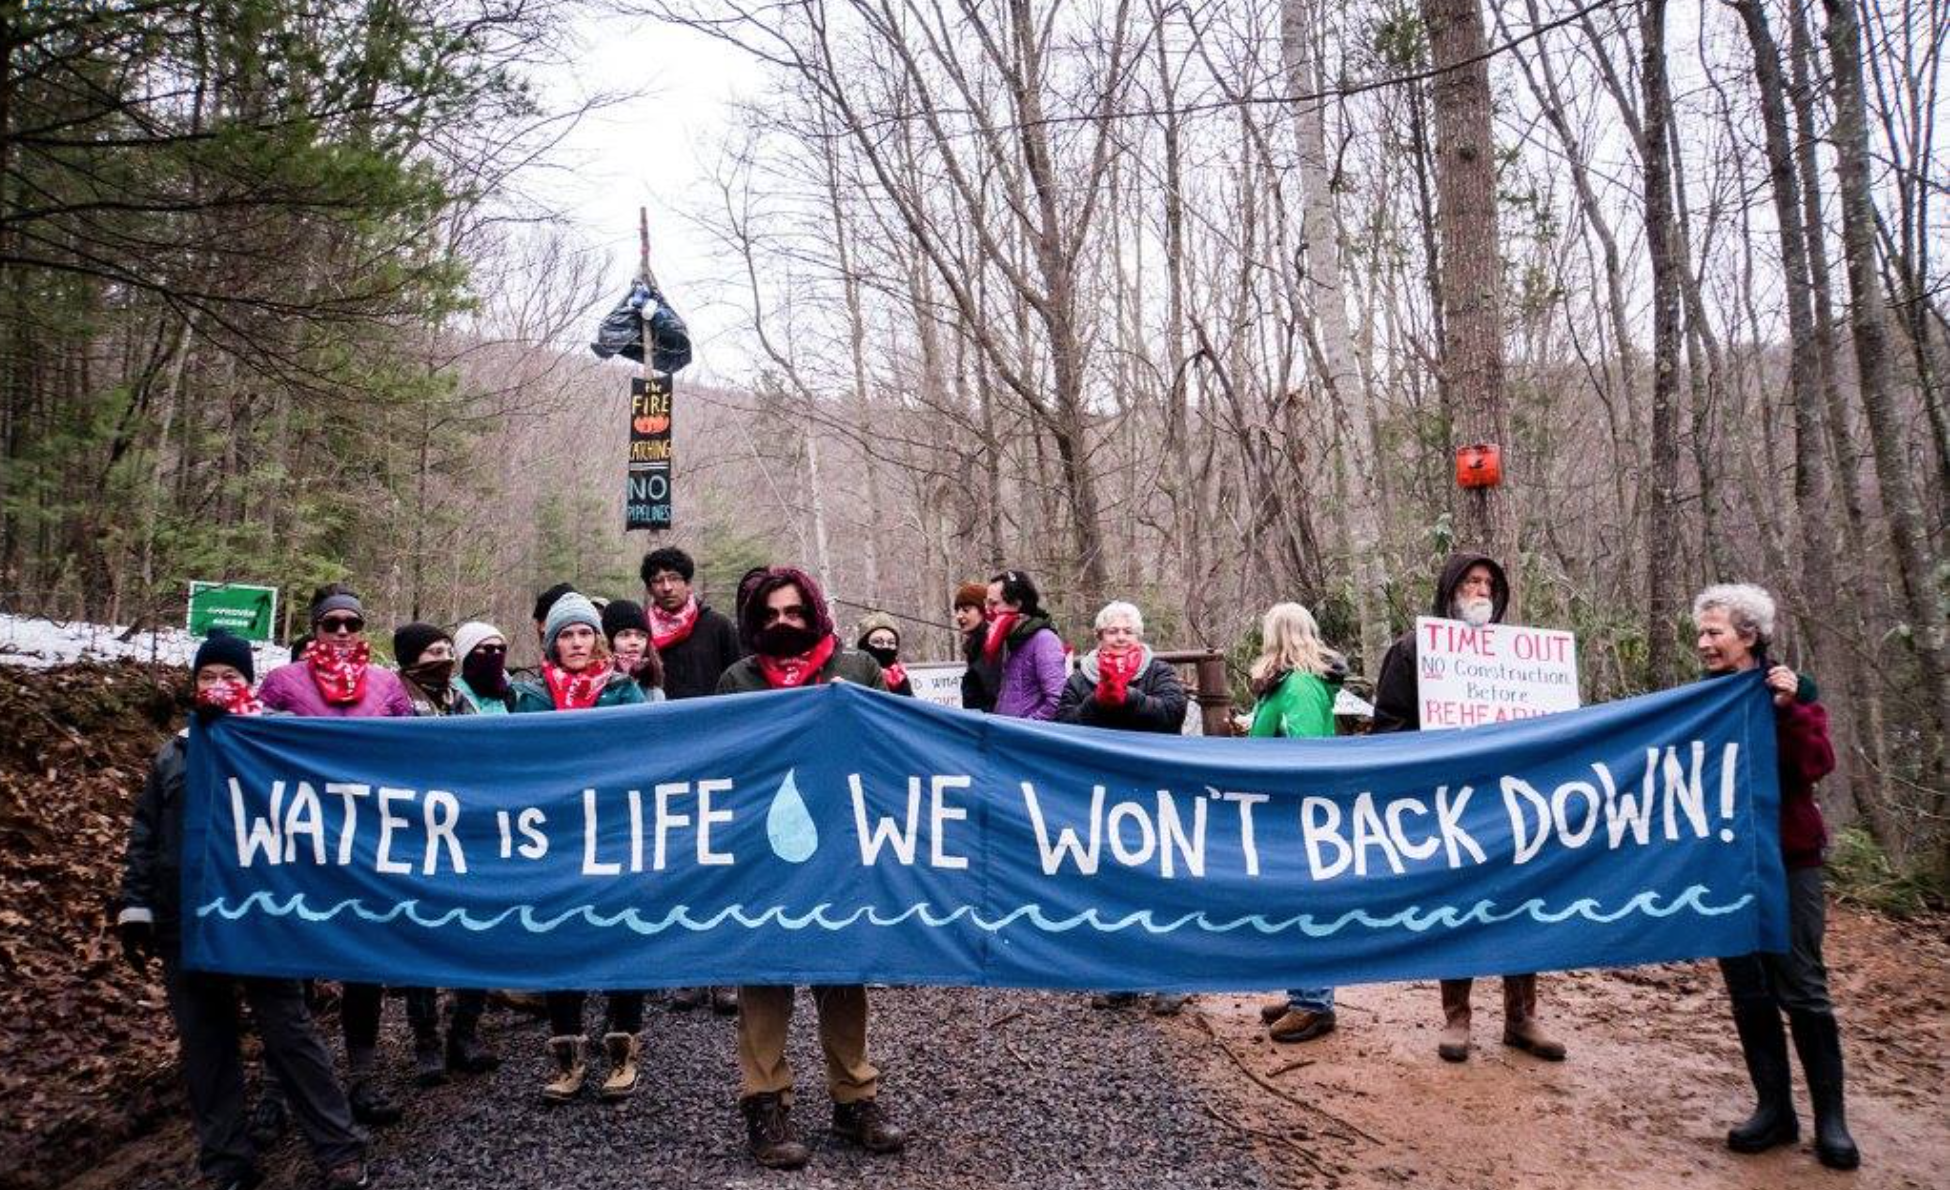 Yellow Finch Tree Sits, March 2018 (Photo: Appalachians Against Pipelines)